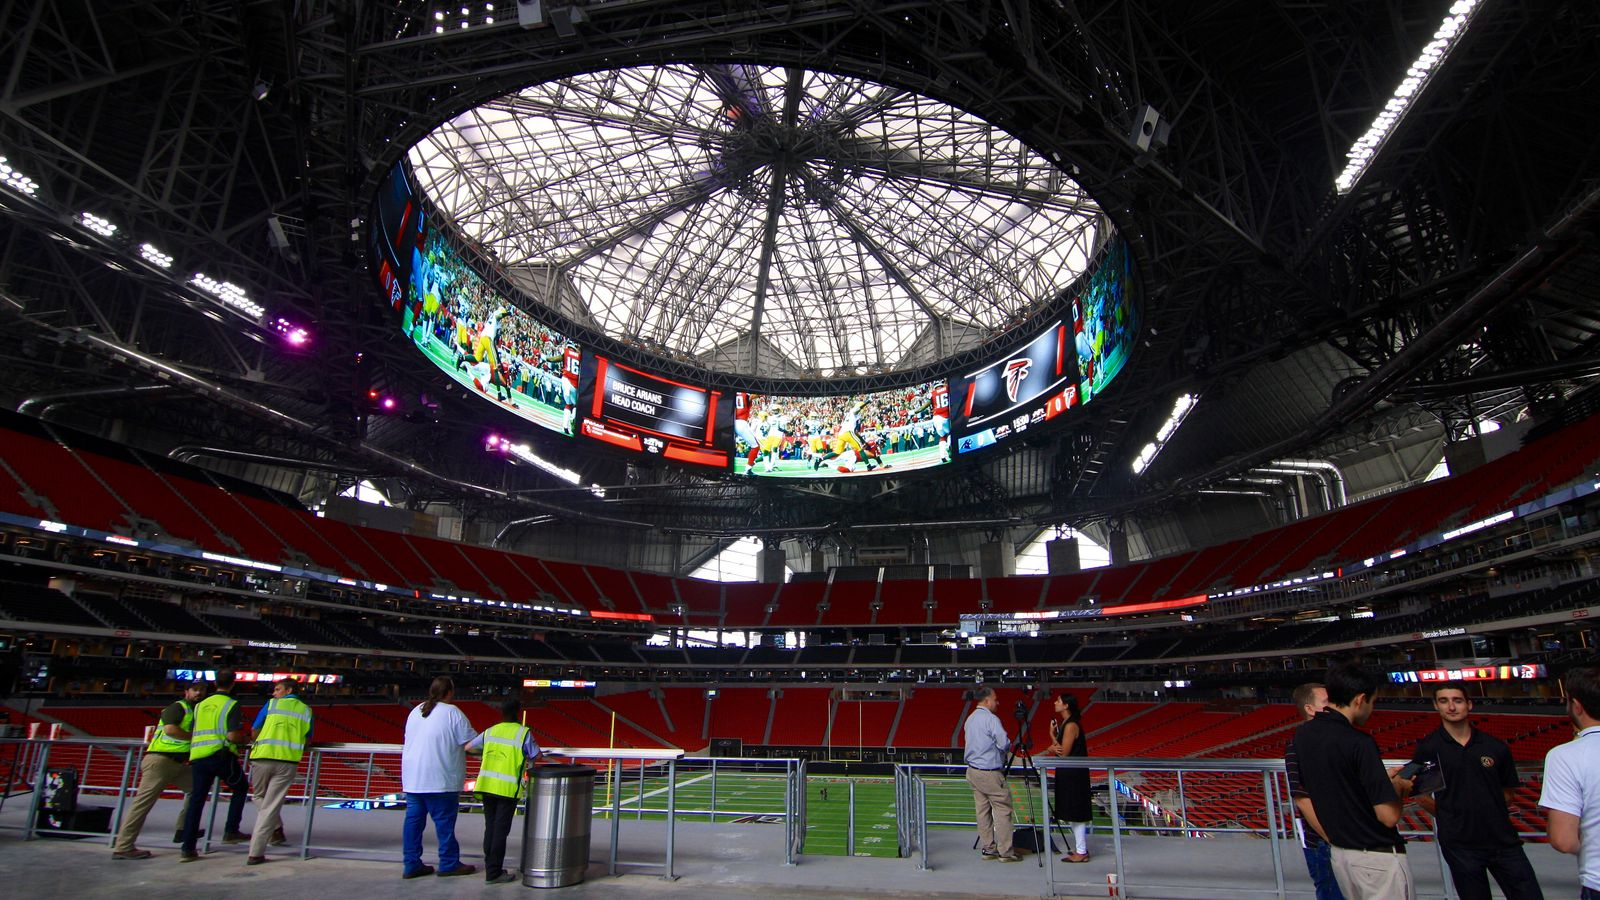 Mercedes Benz Seattle >> The Atlanta Falcons' Mercedes-Benz Stadium, now finished ...